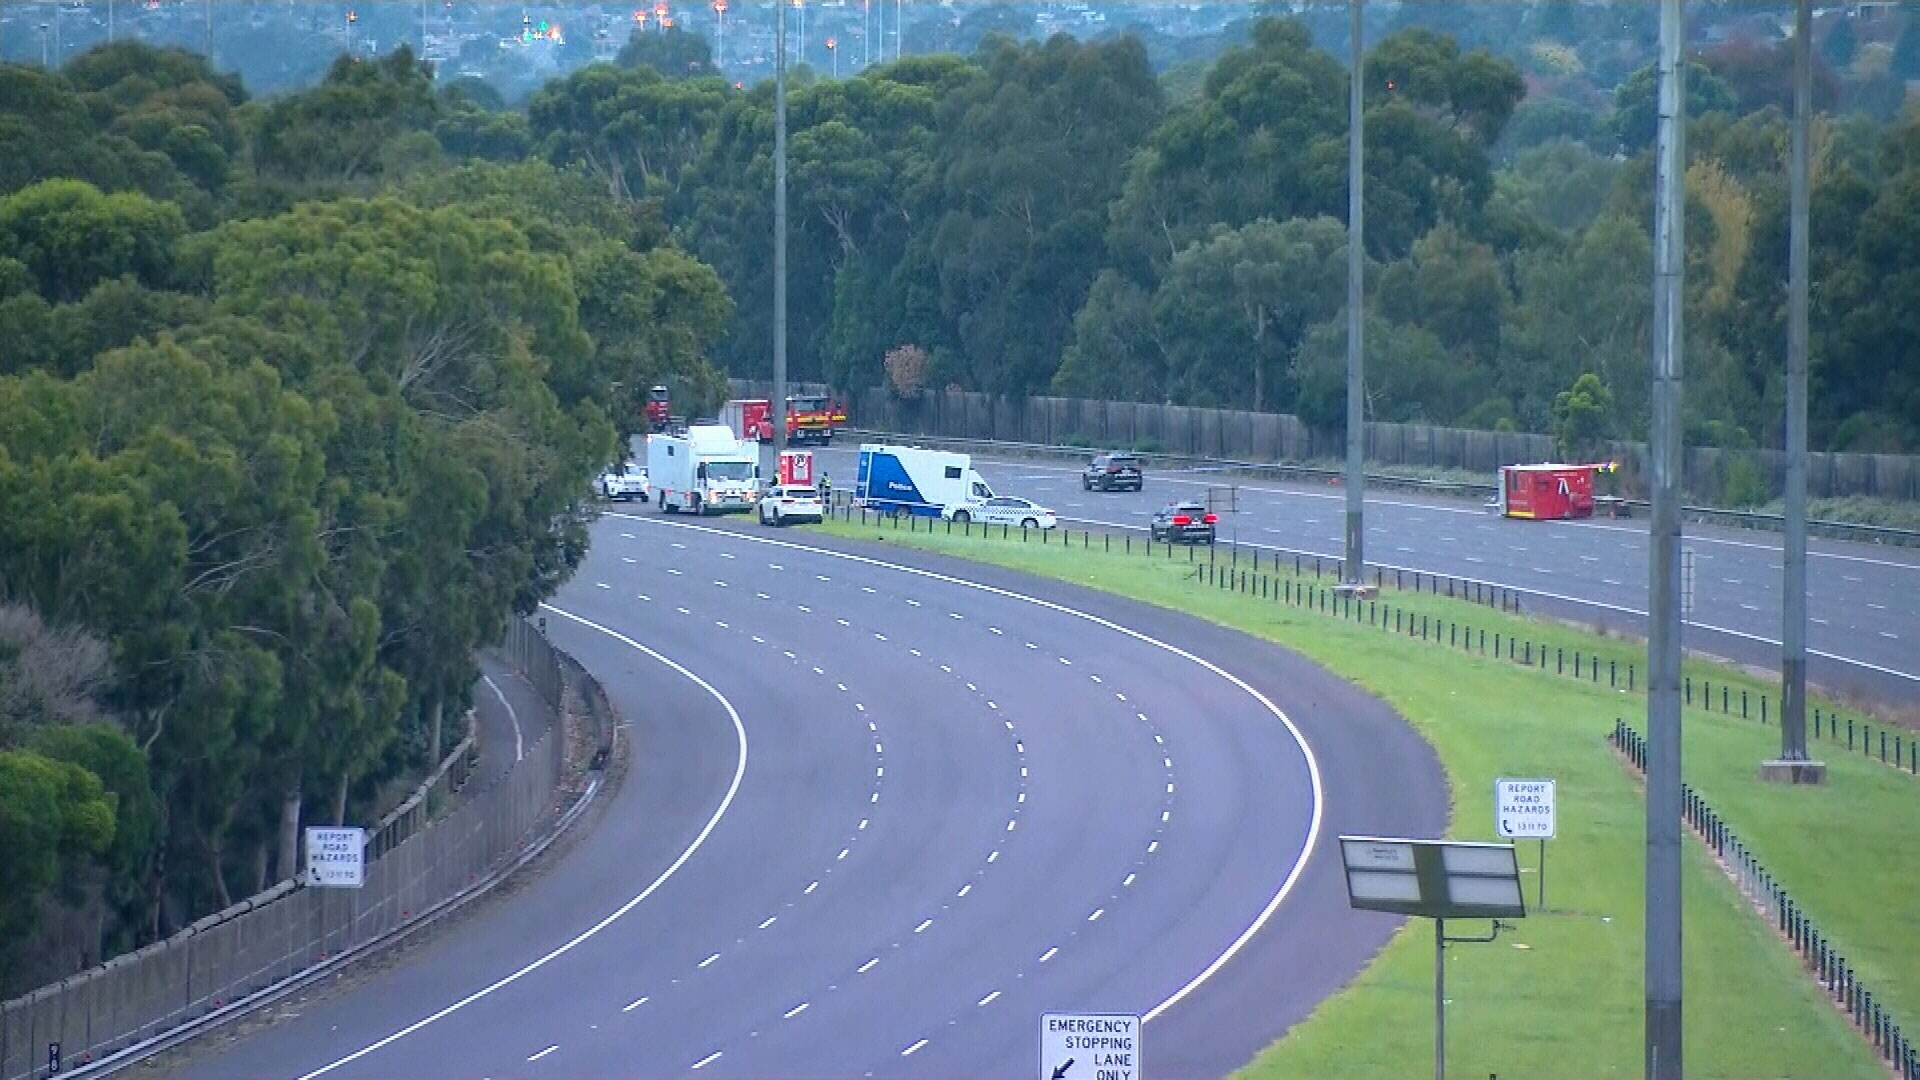 The scene of a horror crash on the Eastern Freeway in Melbourne where four police officers were killed on Wednesday night.